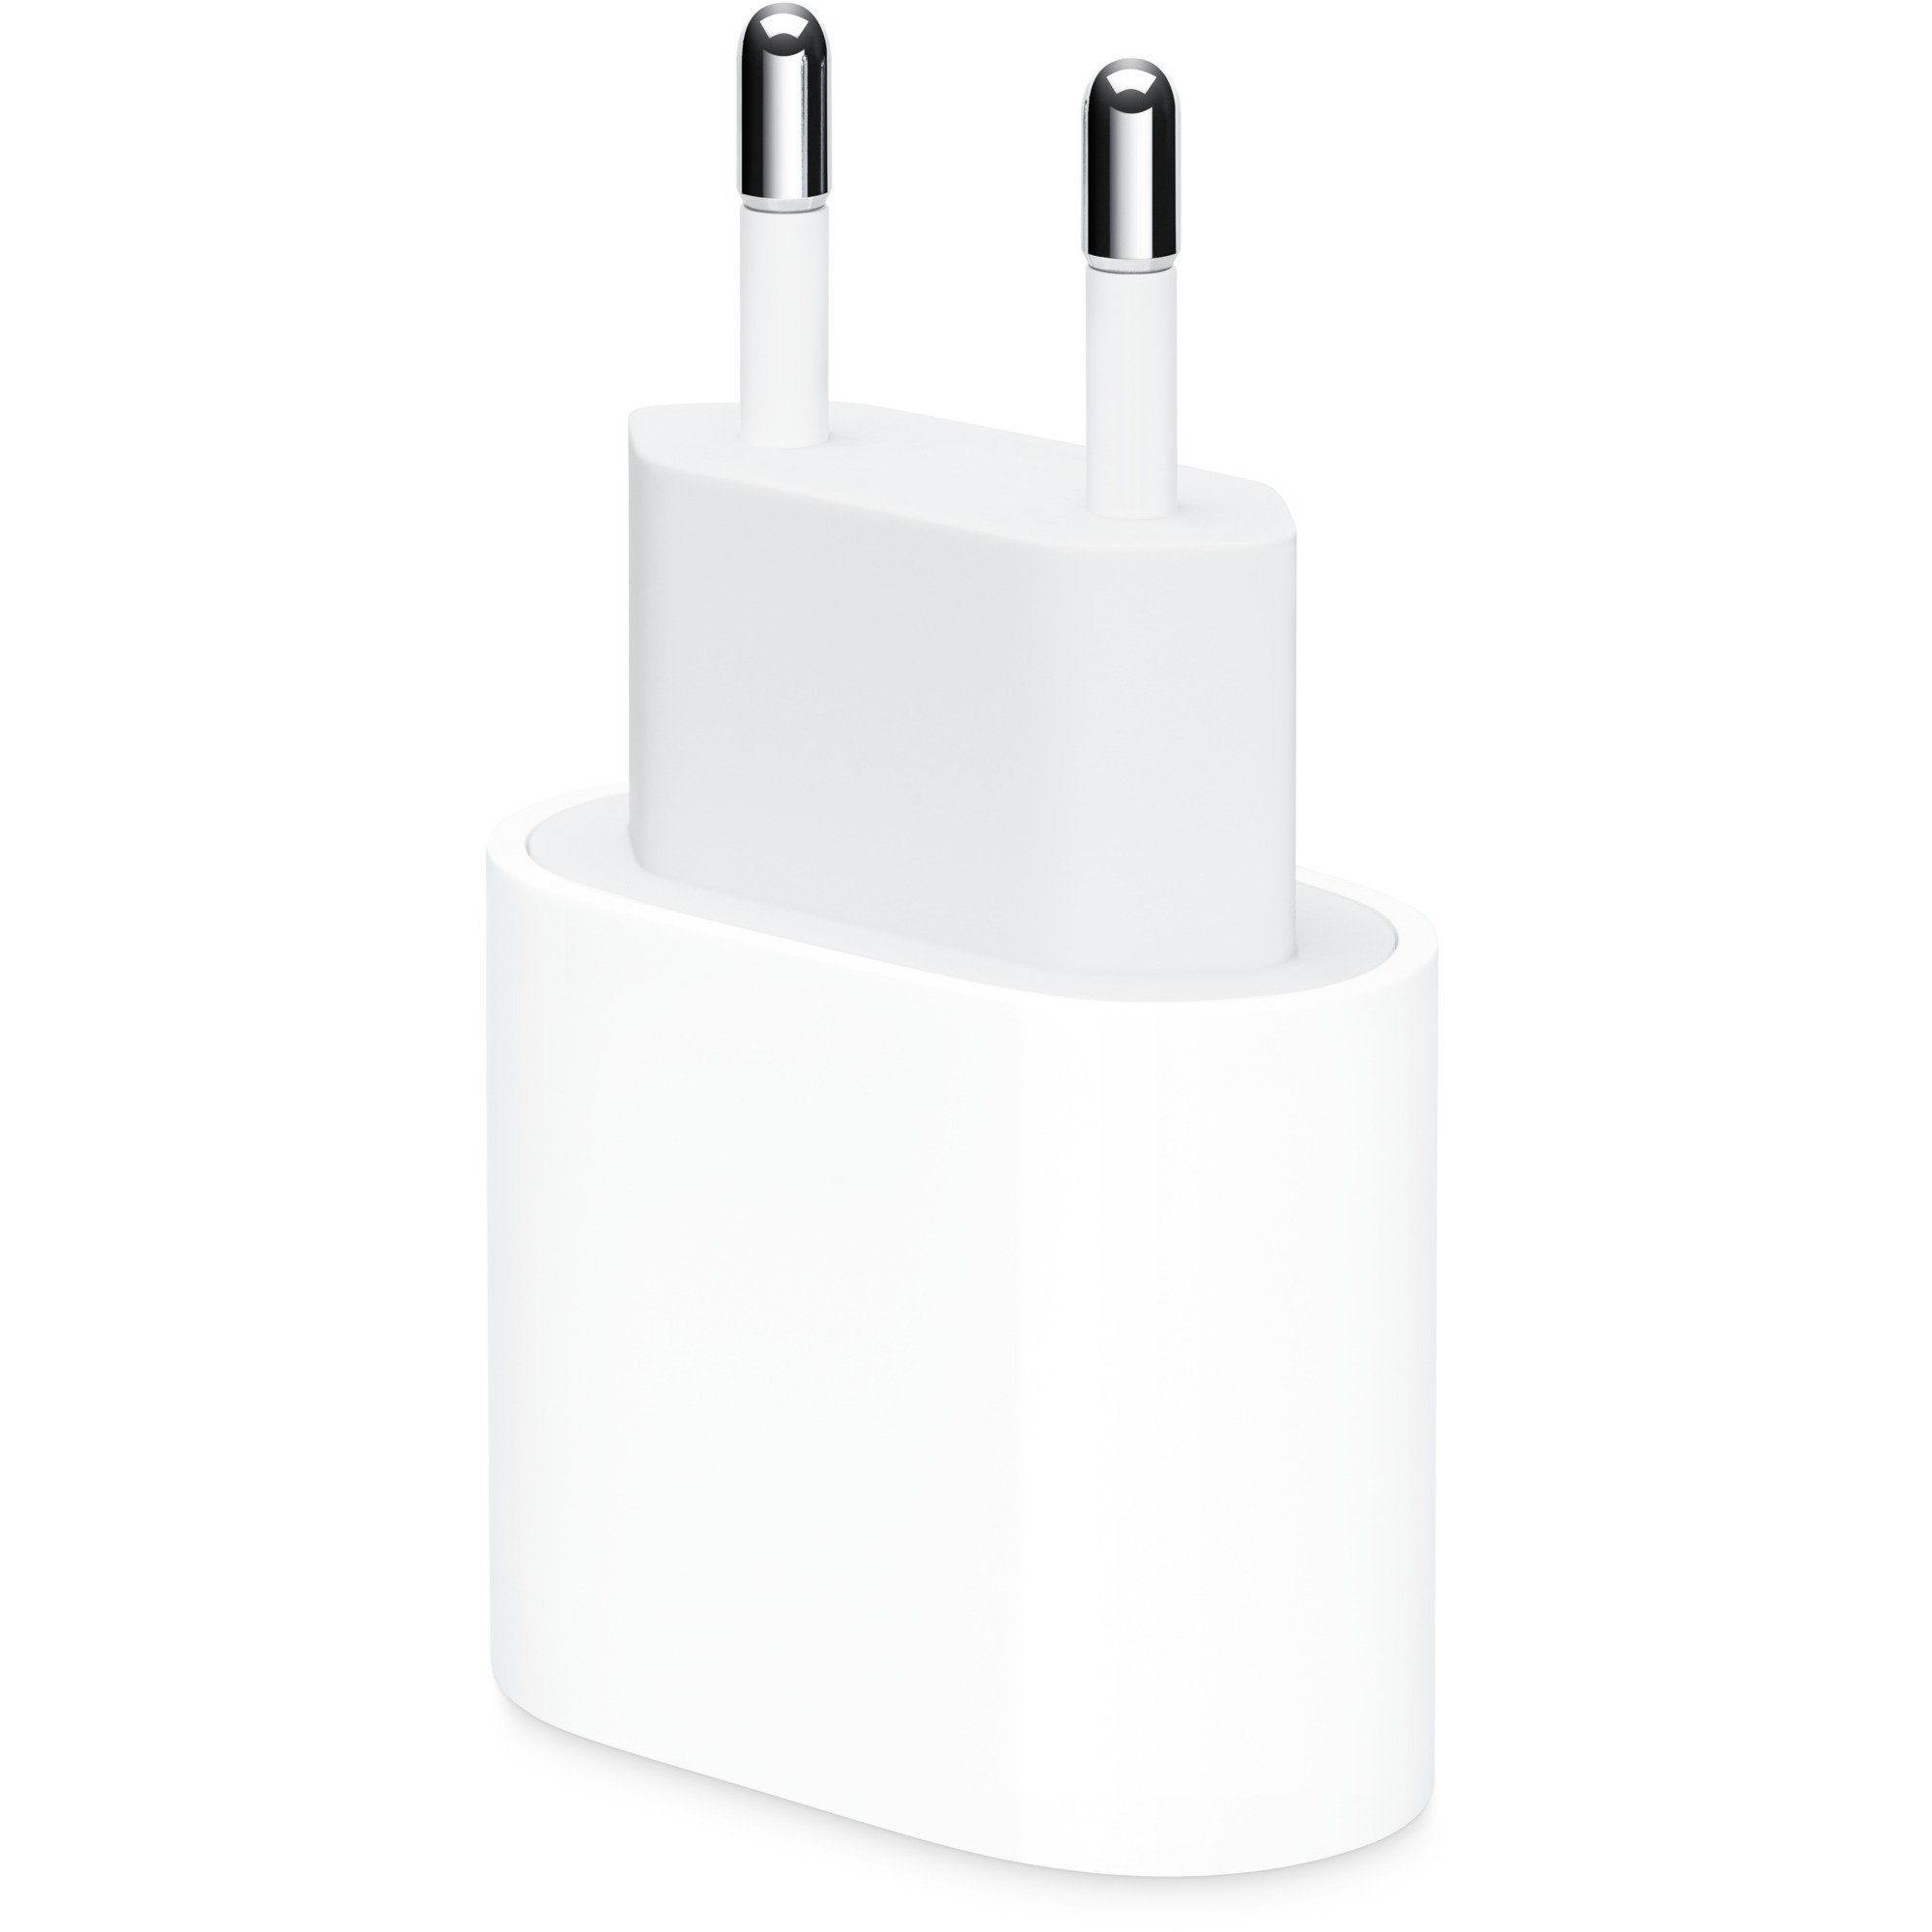 Image of 20W USB-C Power Adapter, Netzteil